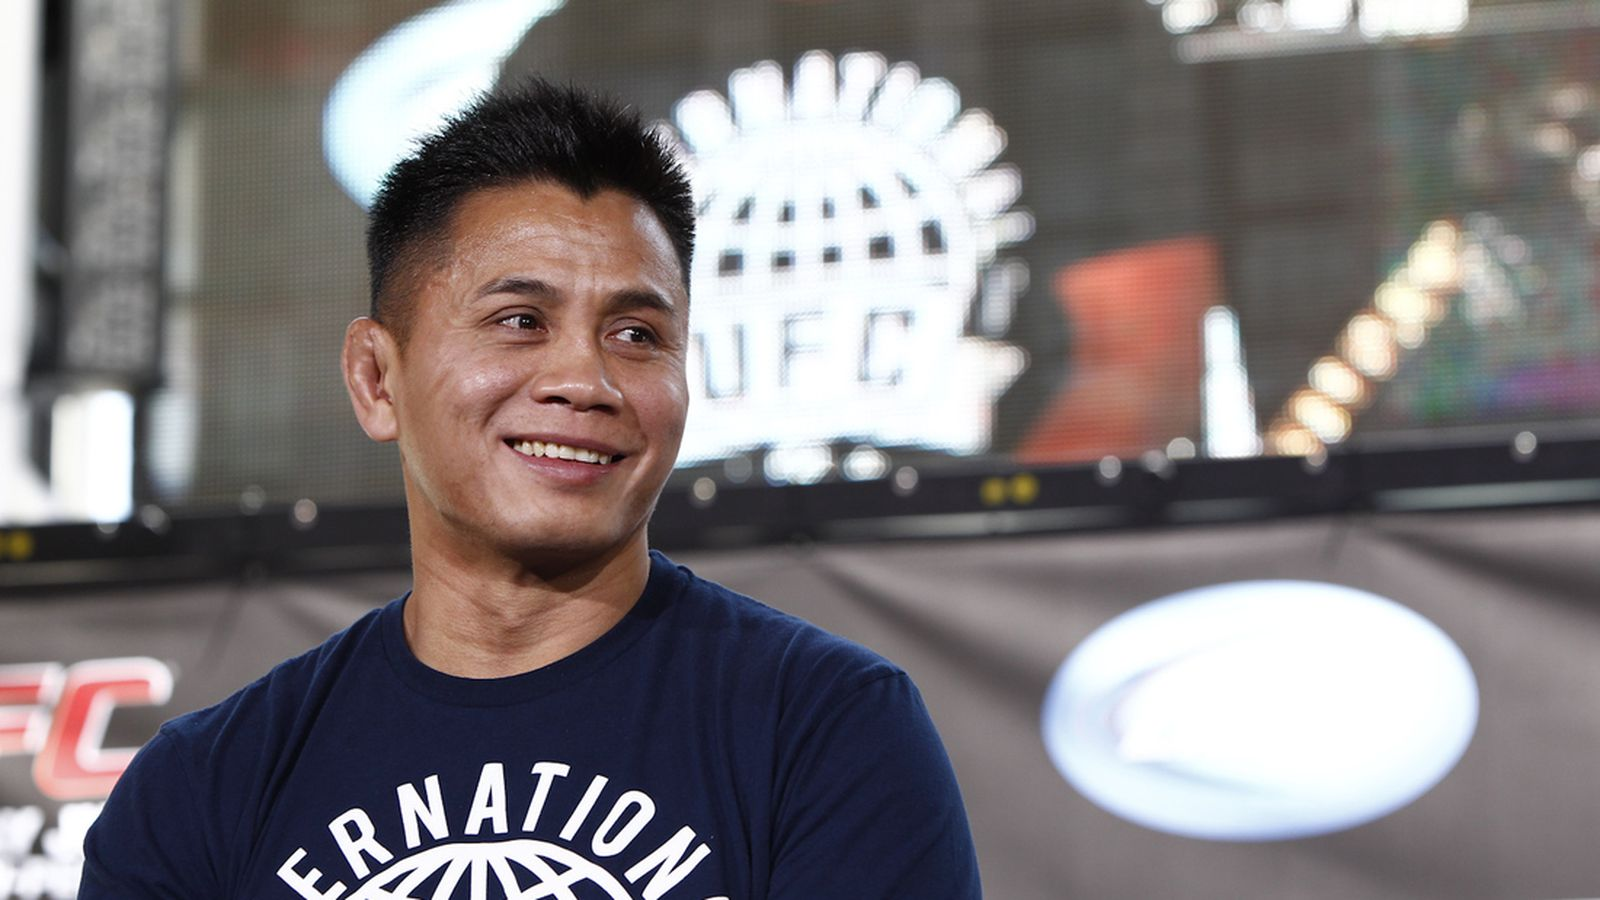 Morning Report: Cung Le: ' I got paid like sh*t'